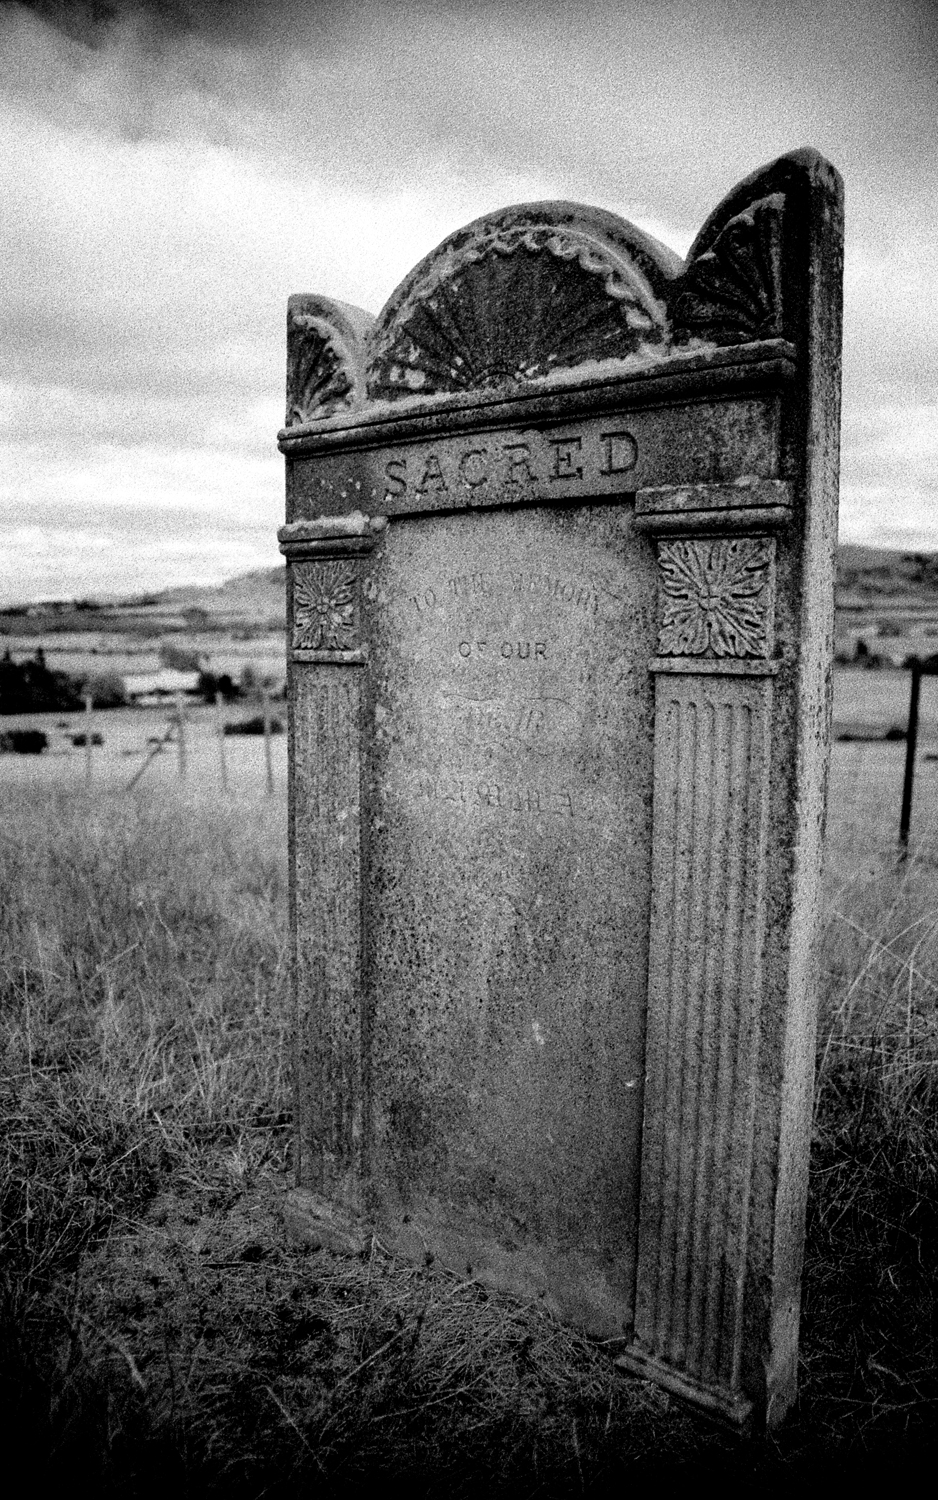 untitled #2 [ross anglican cemetery, ross, tasmania, australia, 2002]